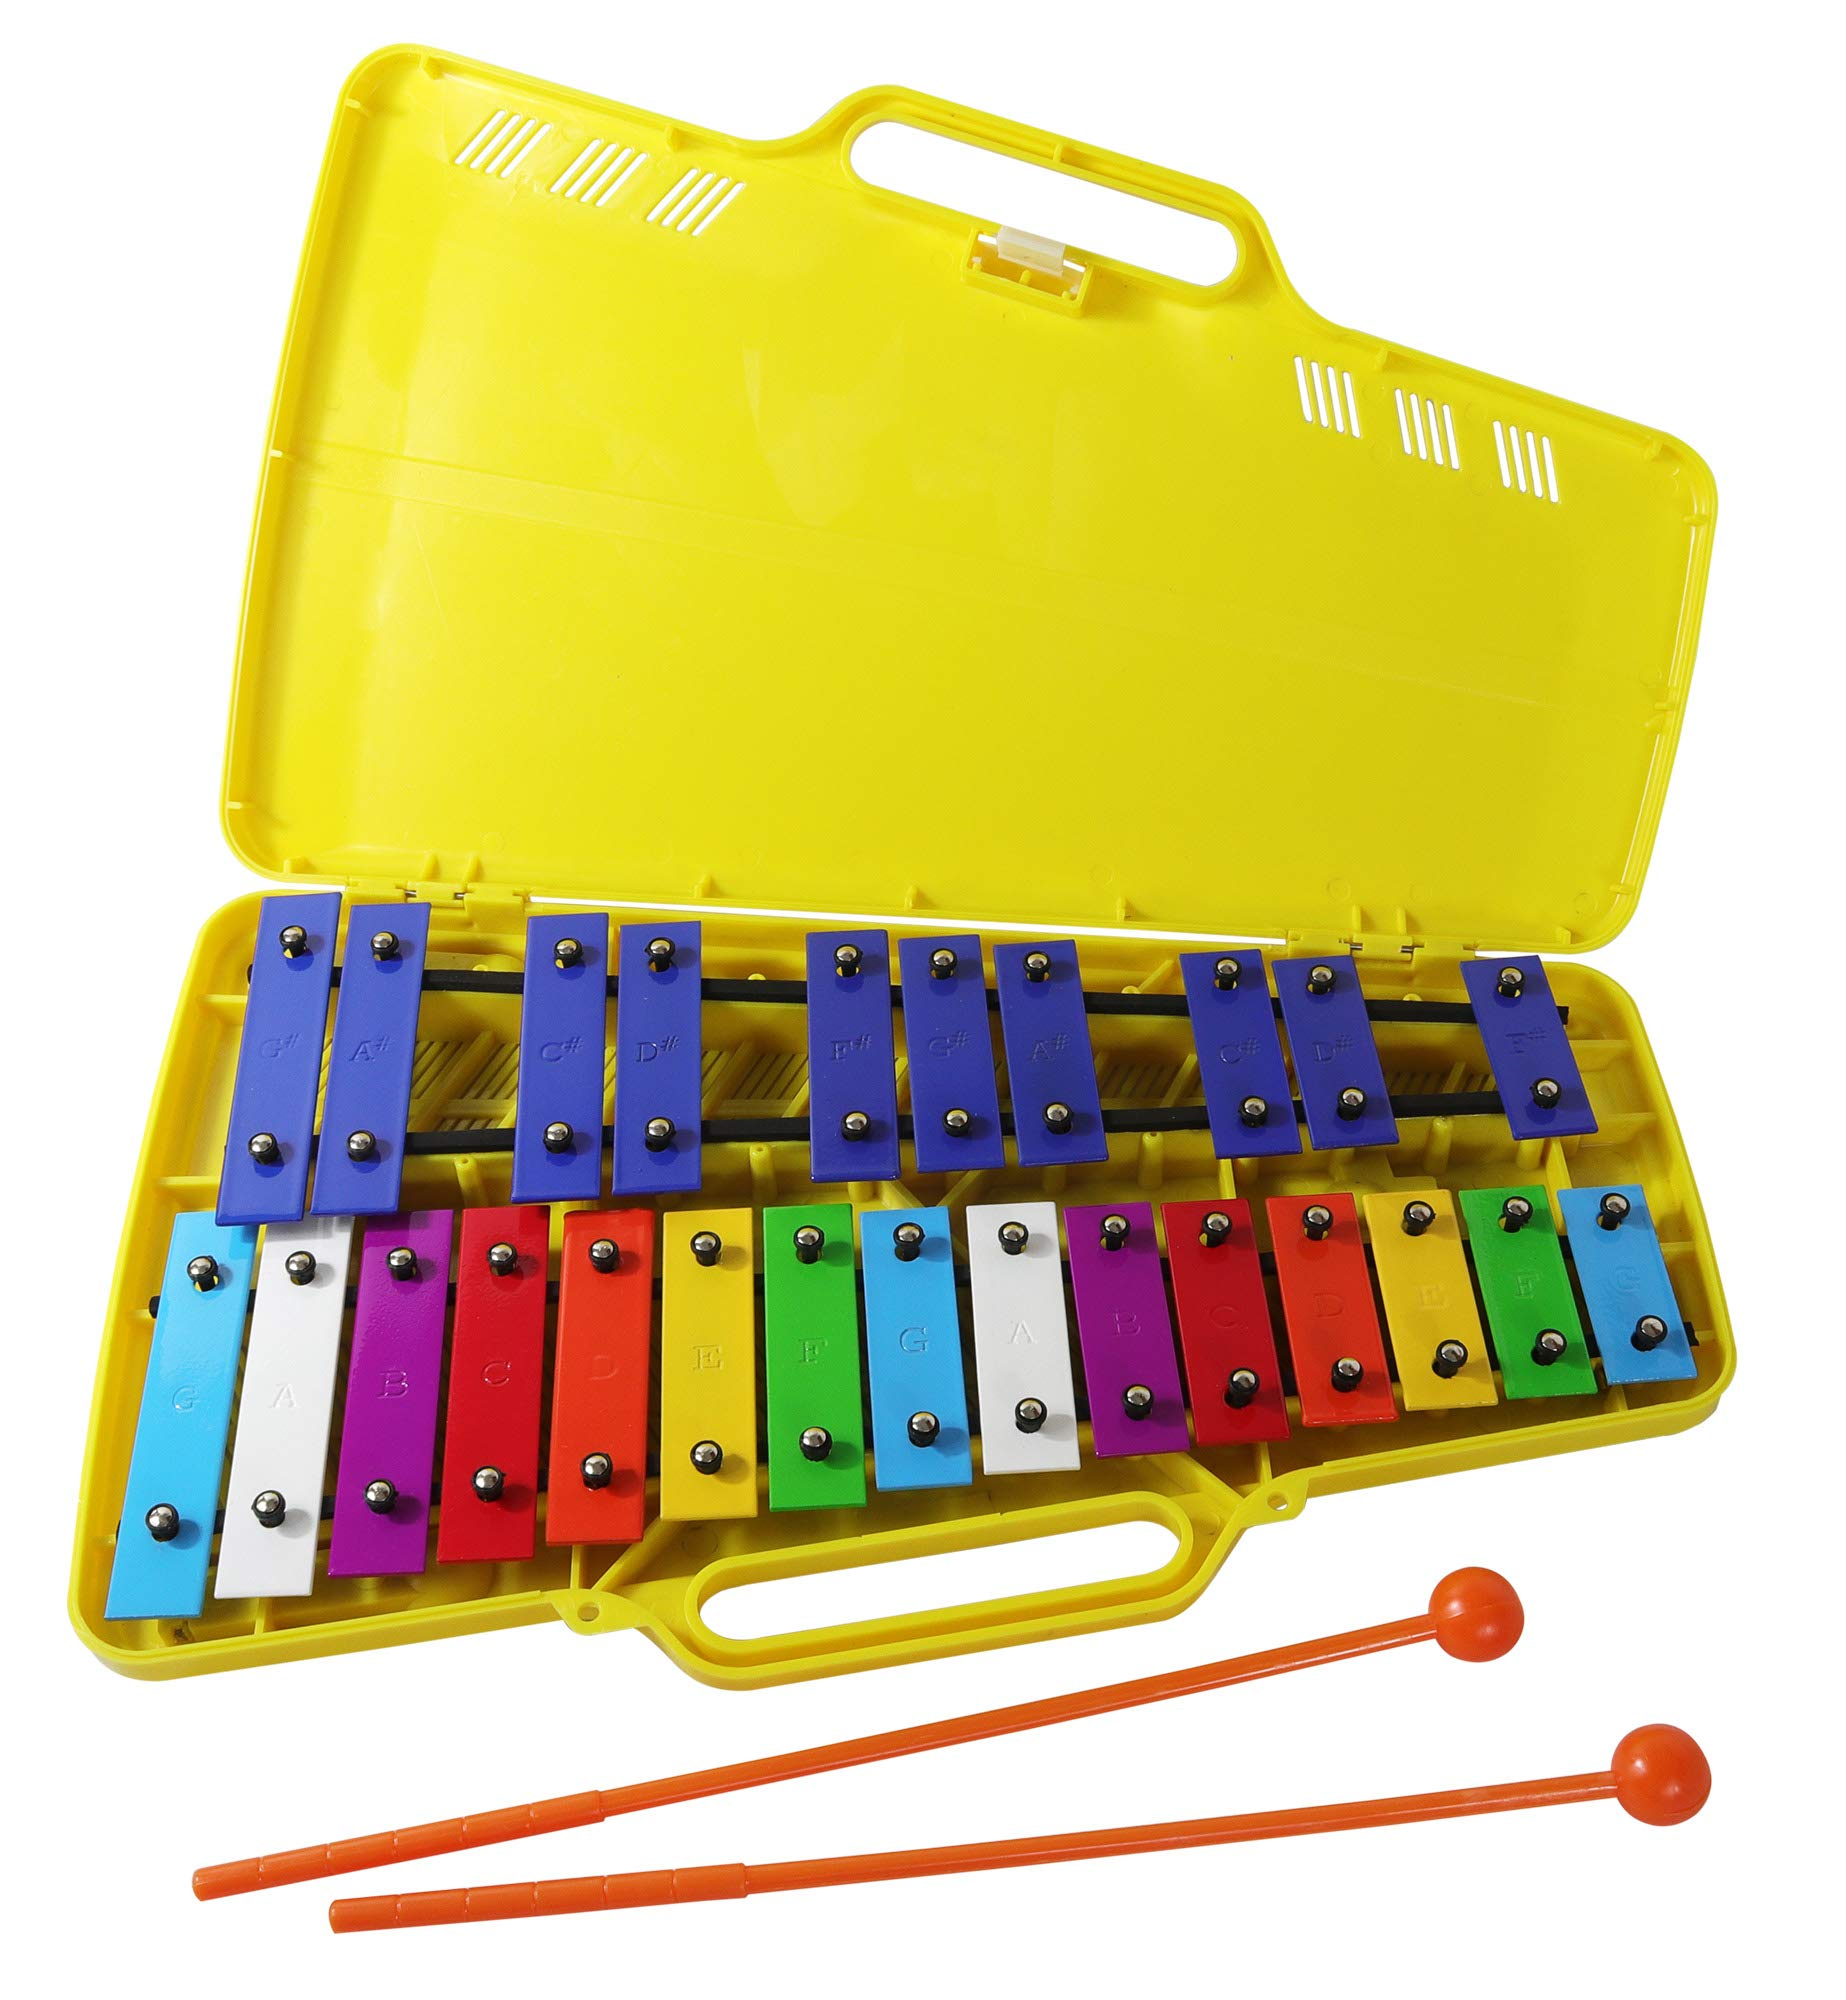 Glockenspiel 25 Notes - Metall Xylophone - Chromatic color-coded keys